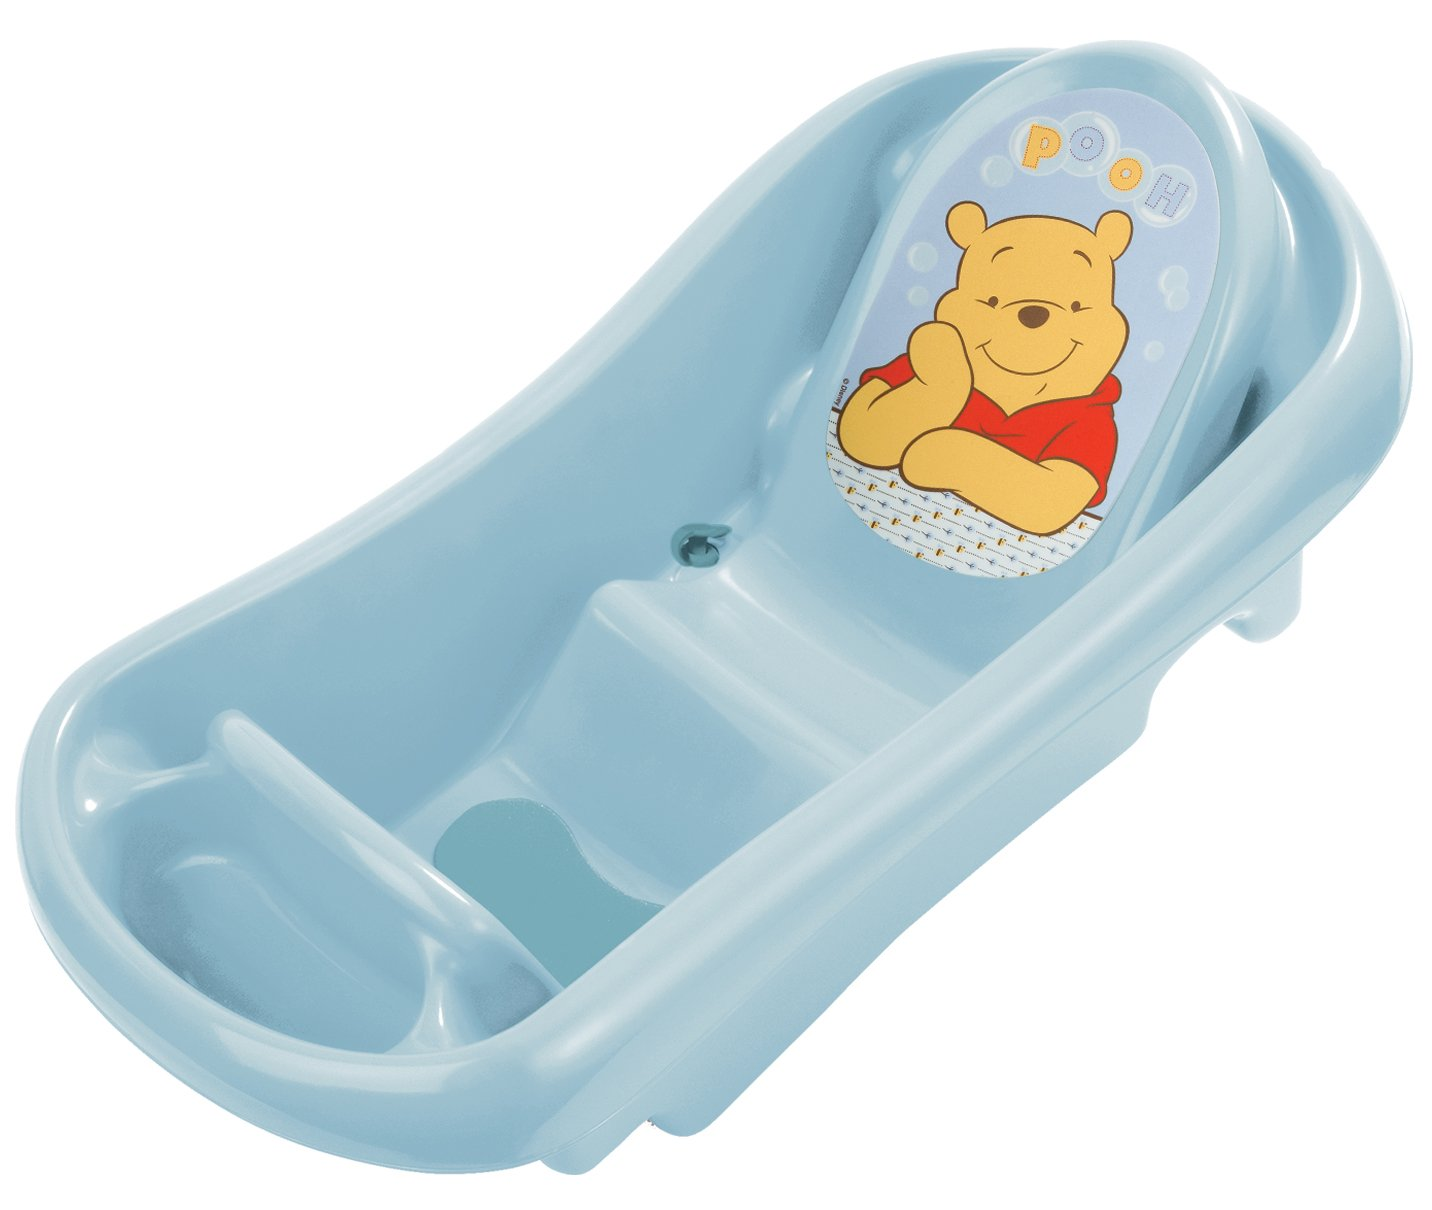 The First Years Winnie the Pooh 3-in-1 Tub, Blue: Amazon.ca: Baby